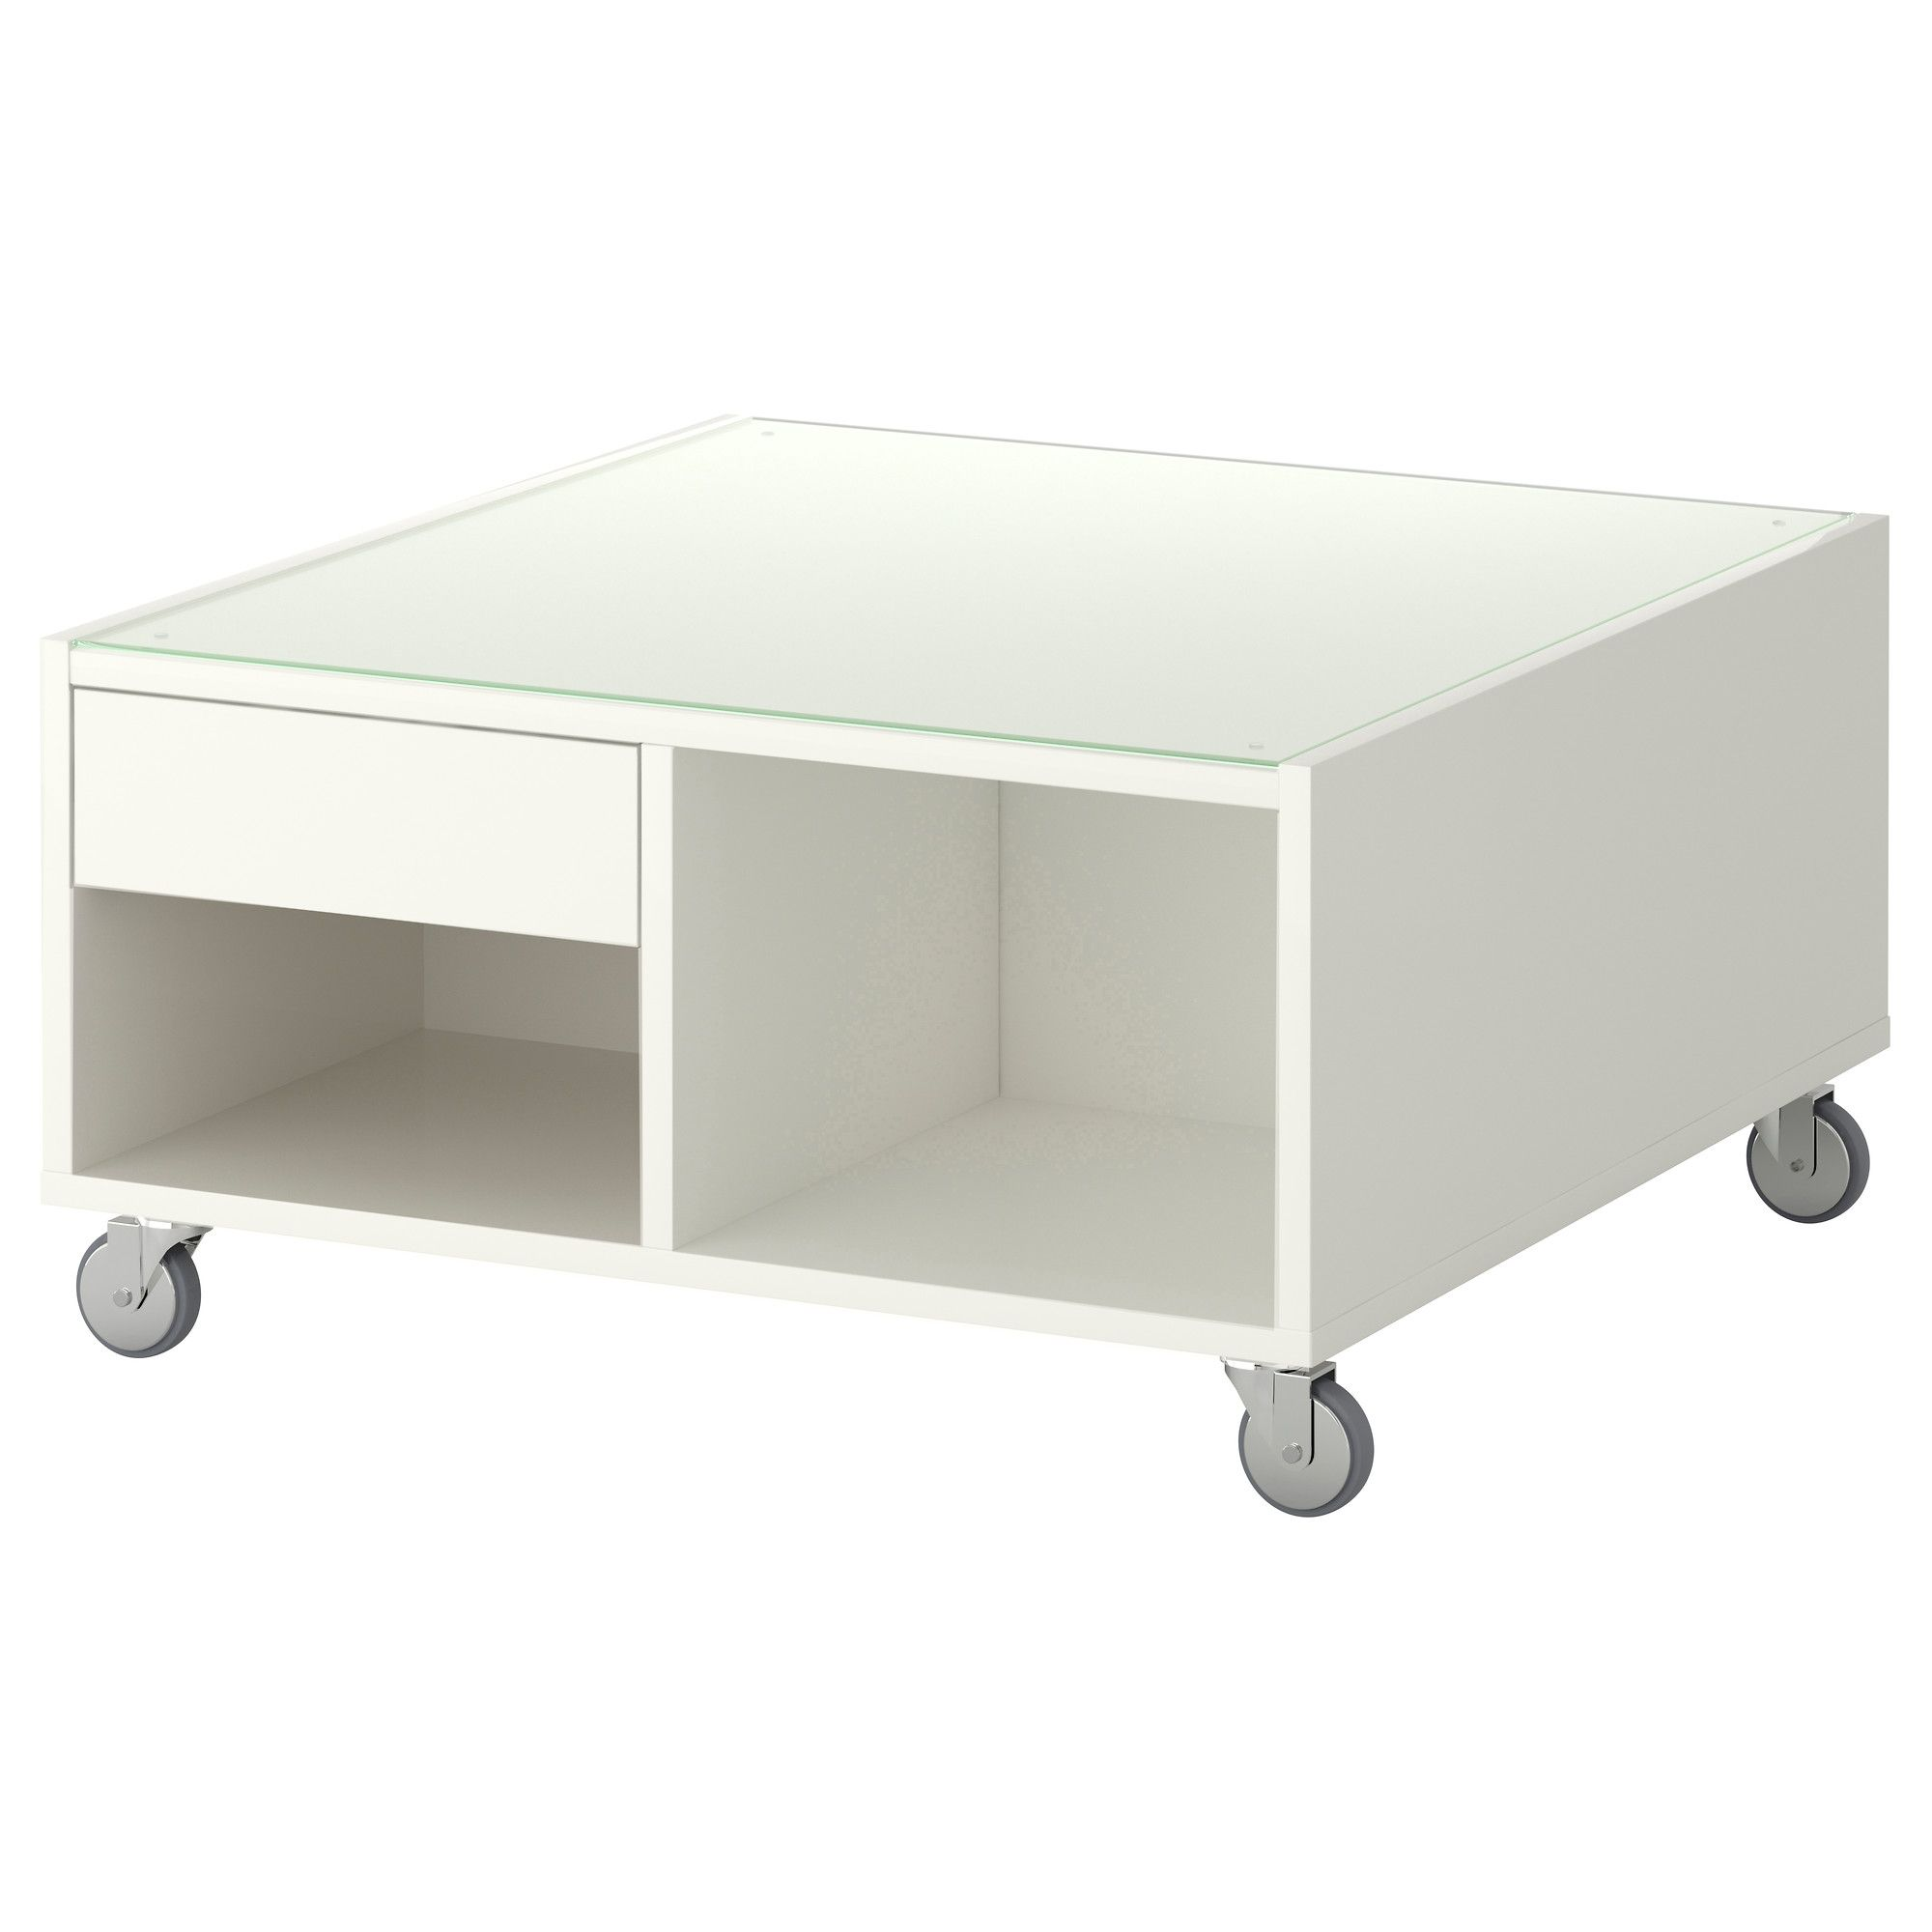 Ikea Couchtisch Birke Glas 169 00 Ikea Boksel Coffee Table White Veneered Surface Gives